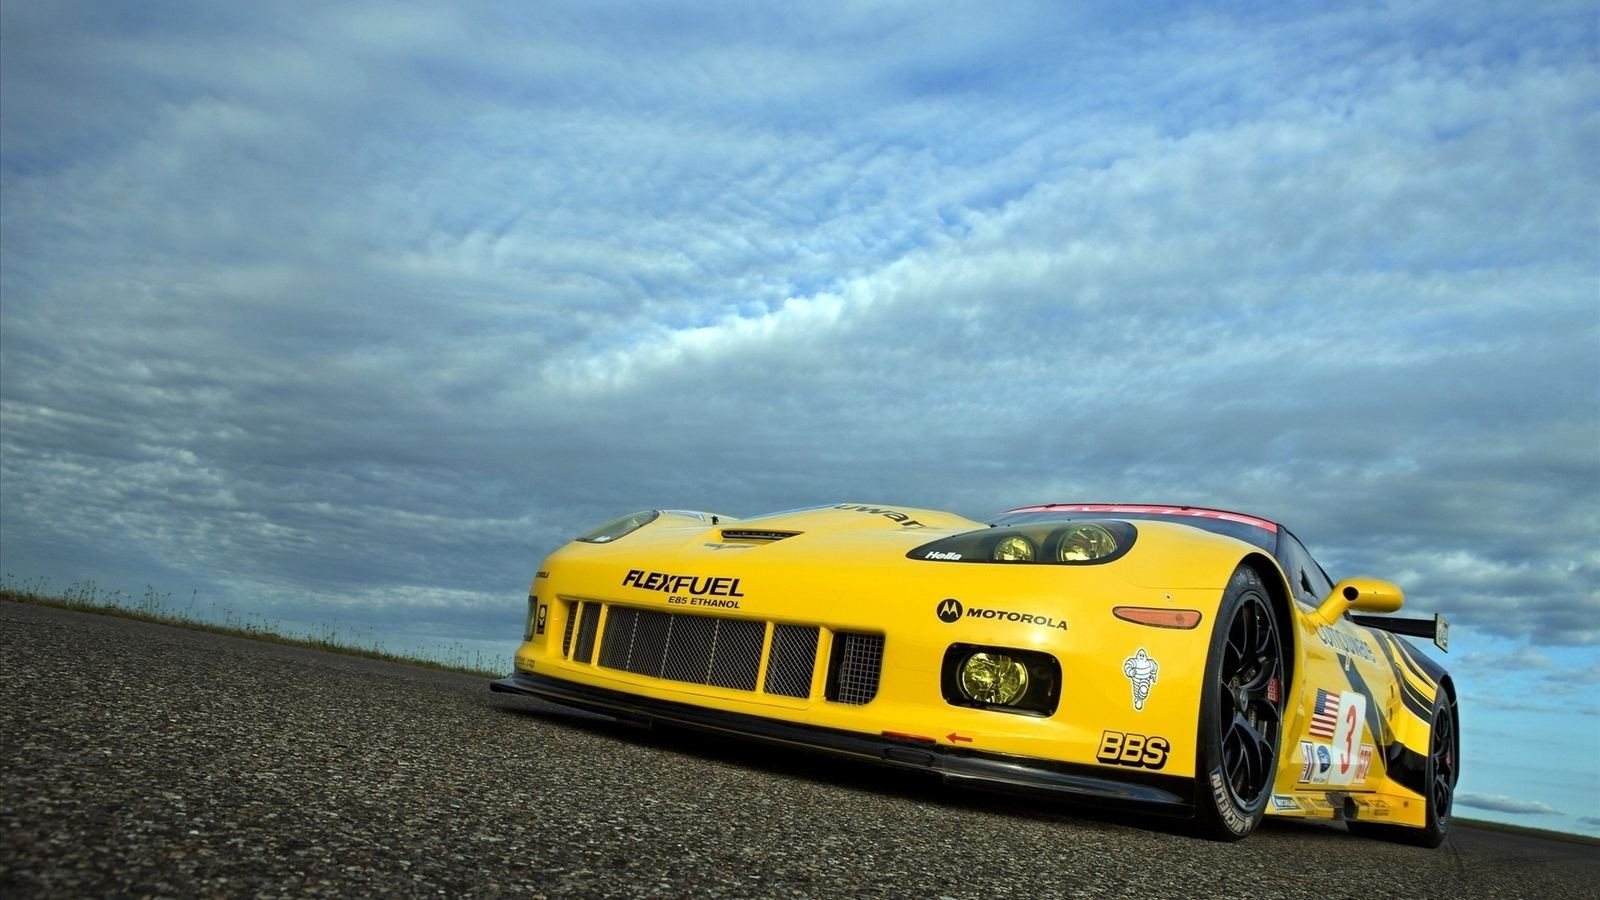 chevrolet, c6r, corvette, racing next generation